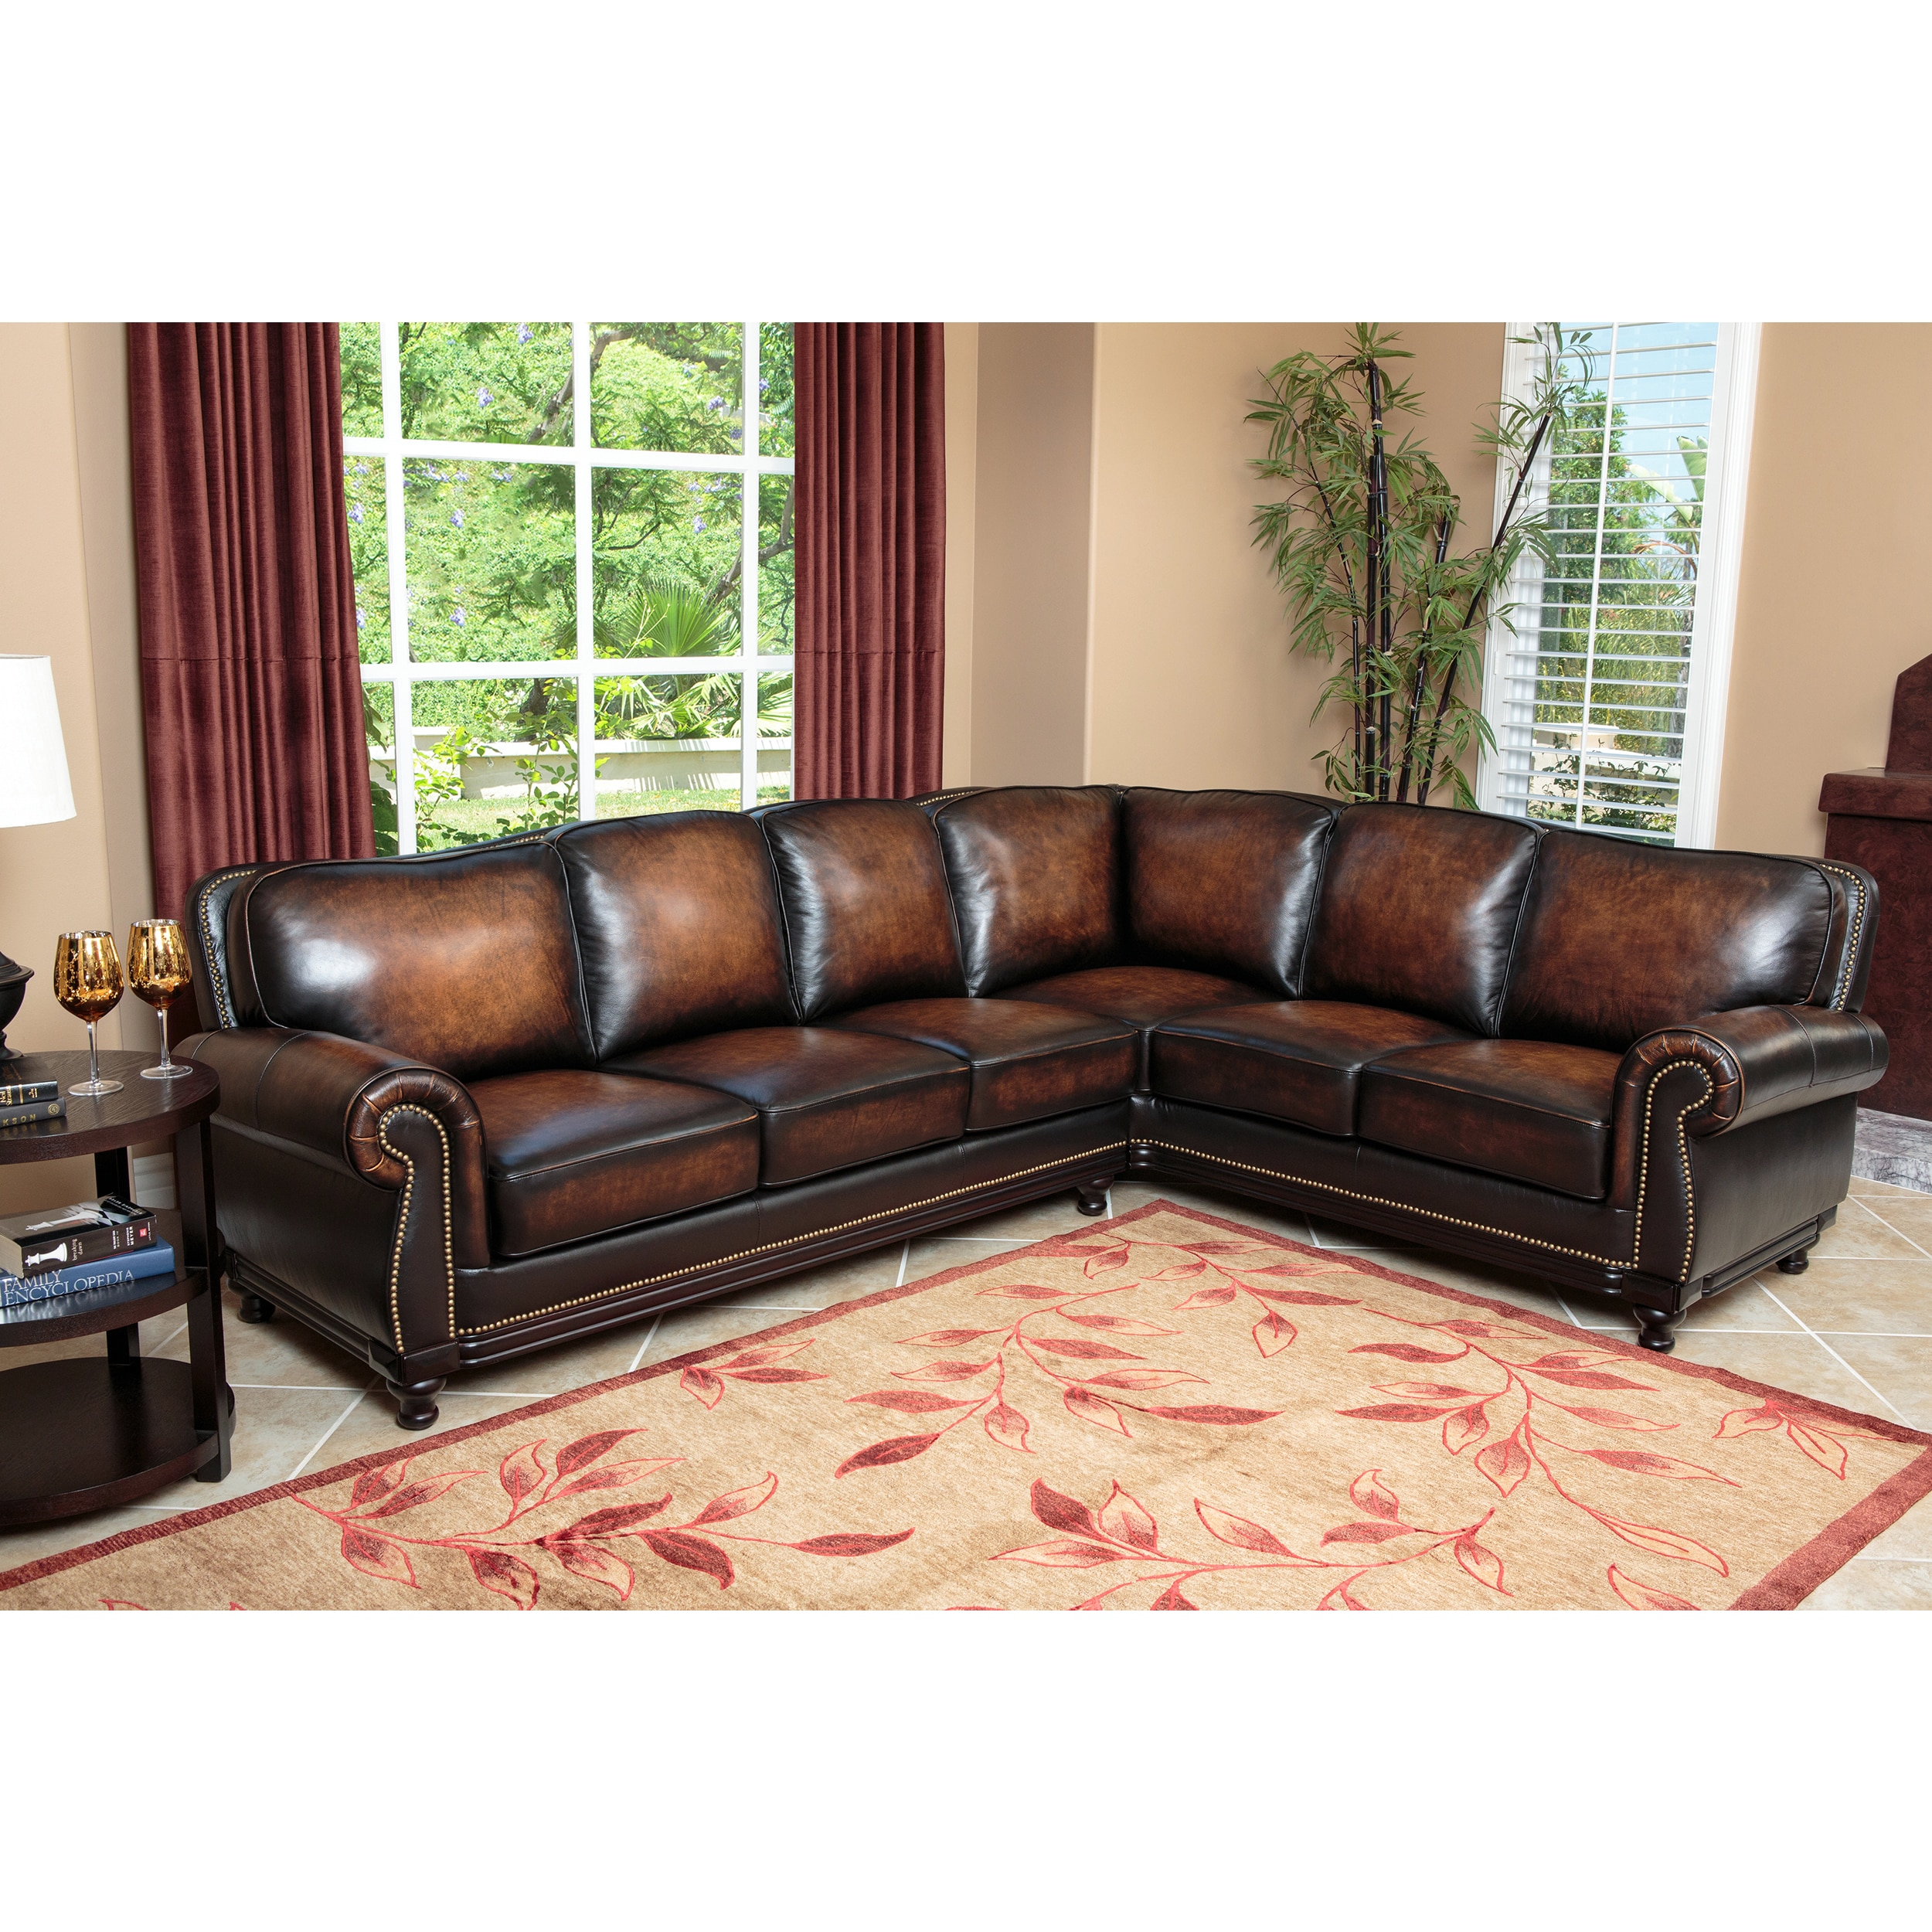 Admirable Buy Leather Sectional Sofas Online At Overstock Our Best Home Interior And Landscaping Oversignezvosmurscom